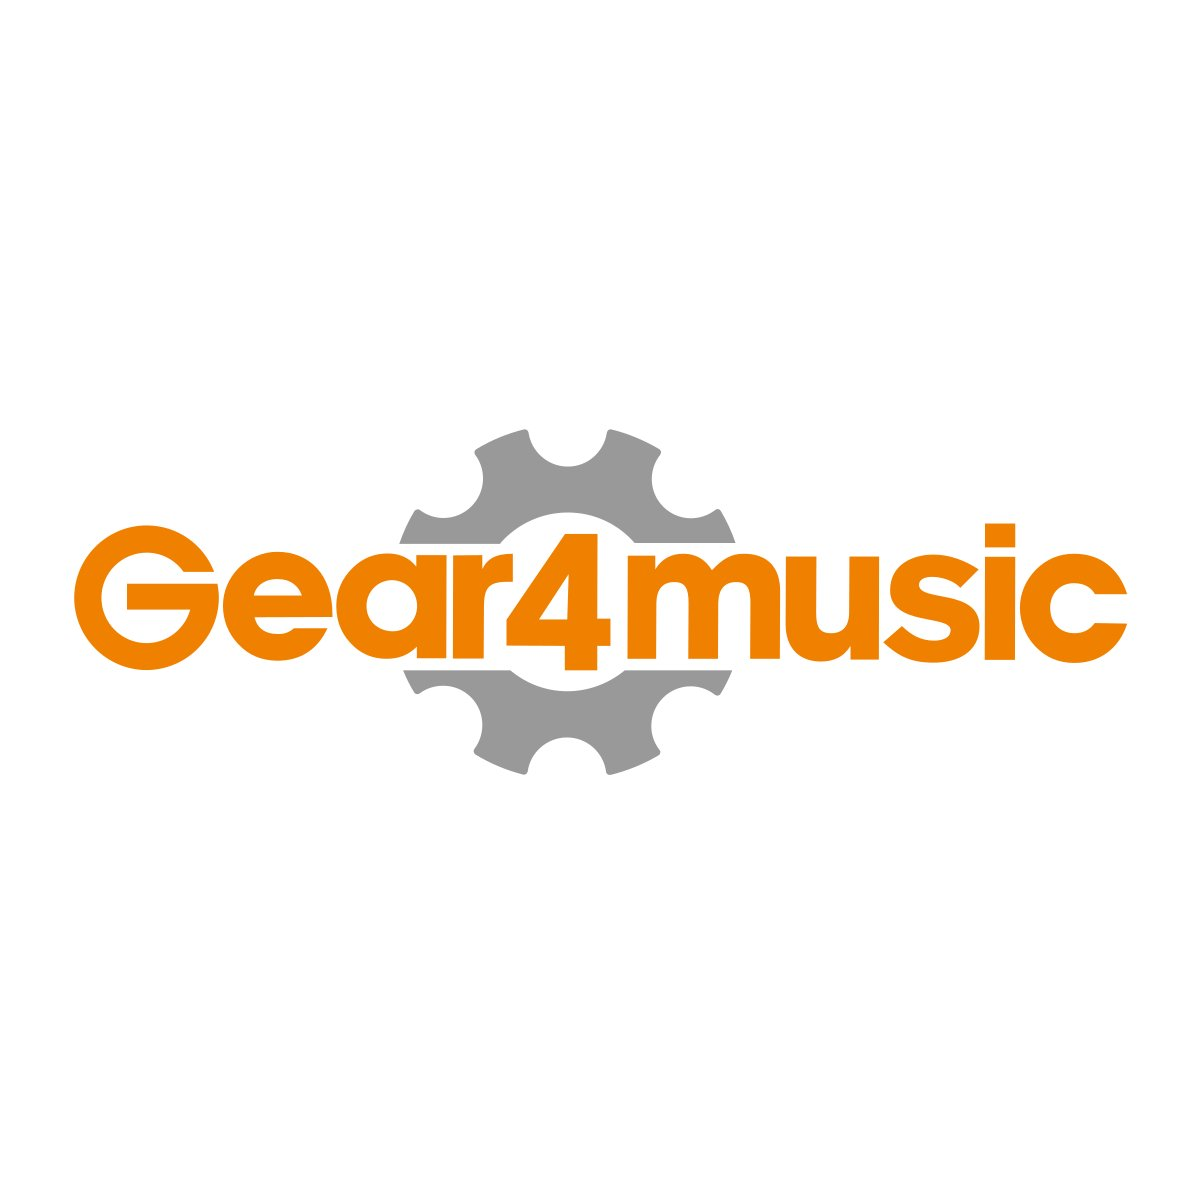 Deluxe Rock-Gitarrenkoffer von Gear4music